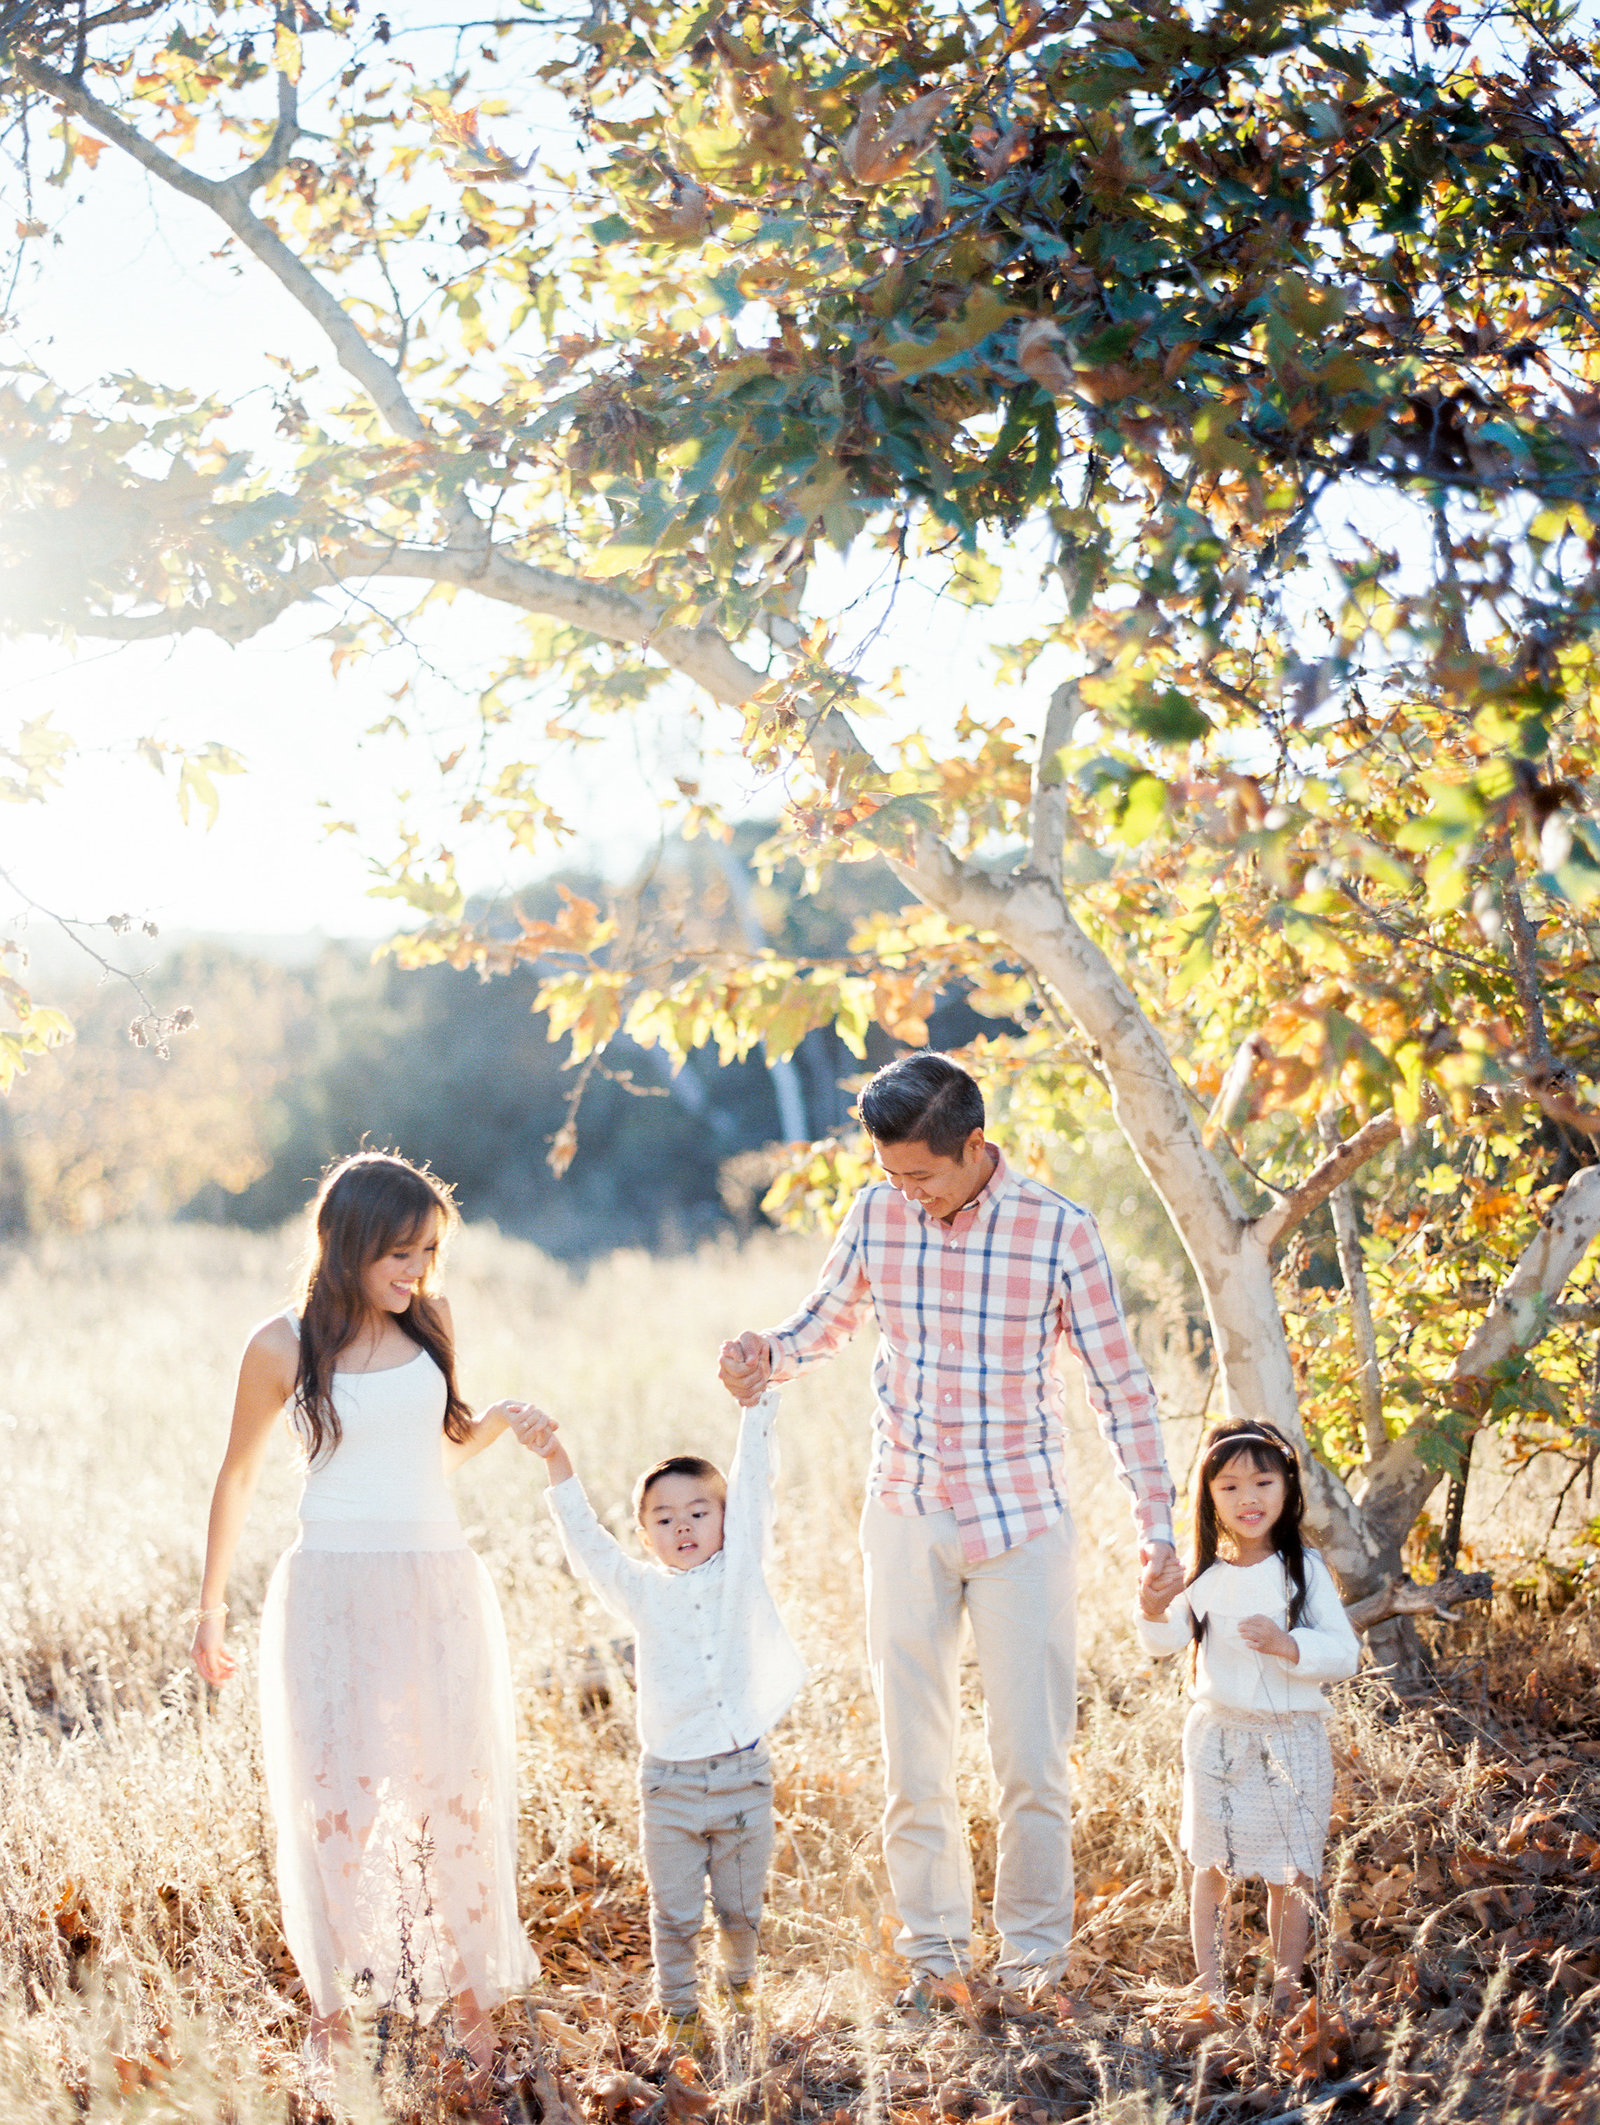 natalie bray studios, portait photographer, san diego family photographer, la jolla photographer, maternity photographer -1-16